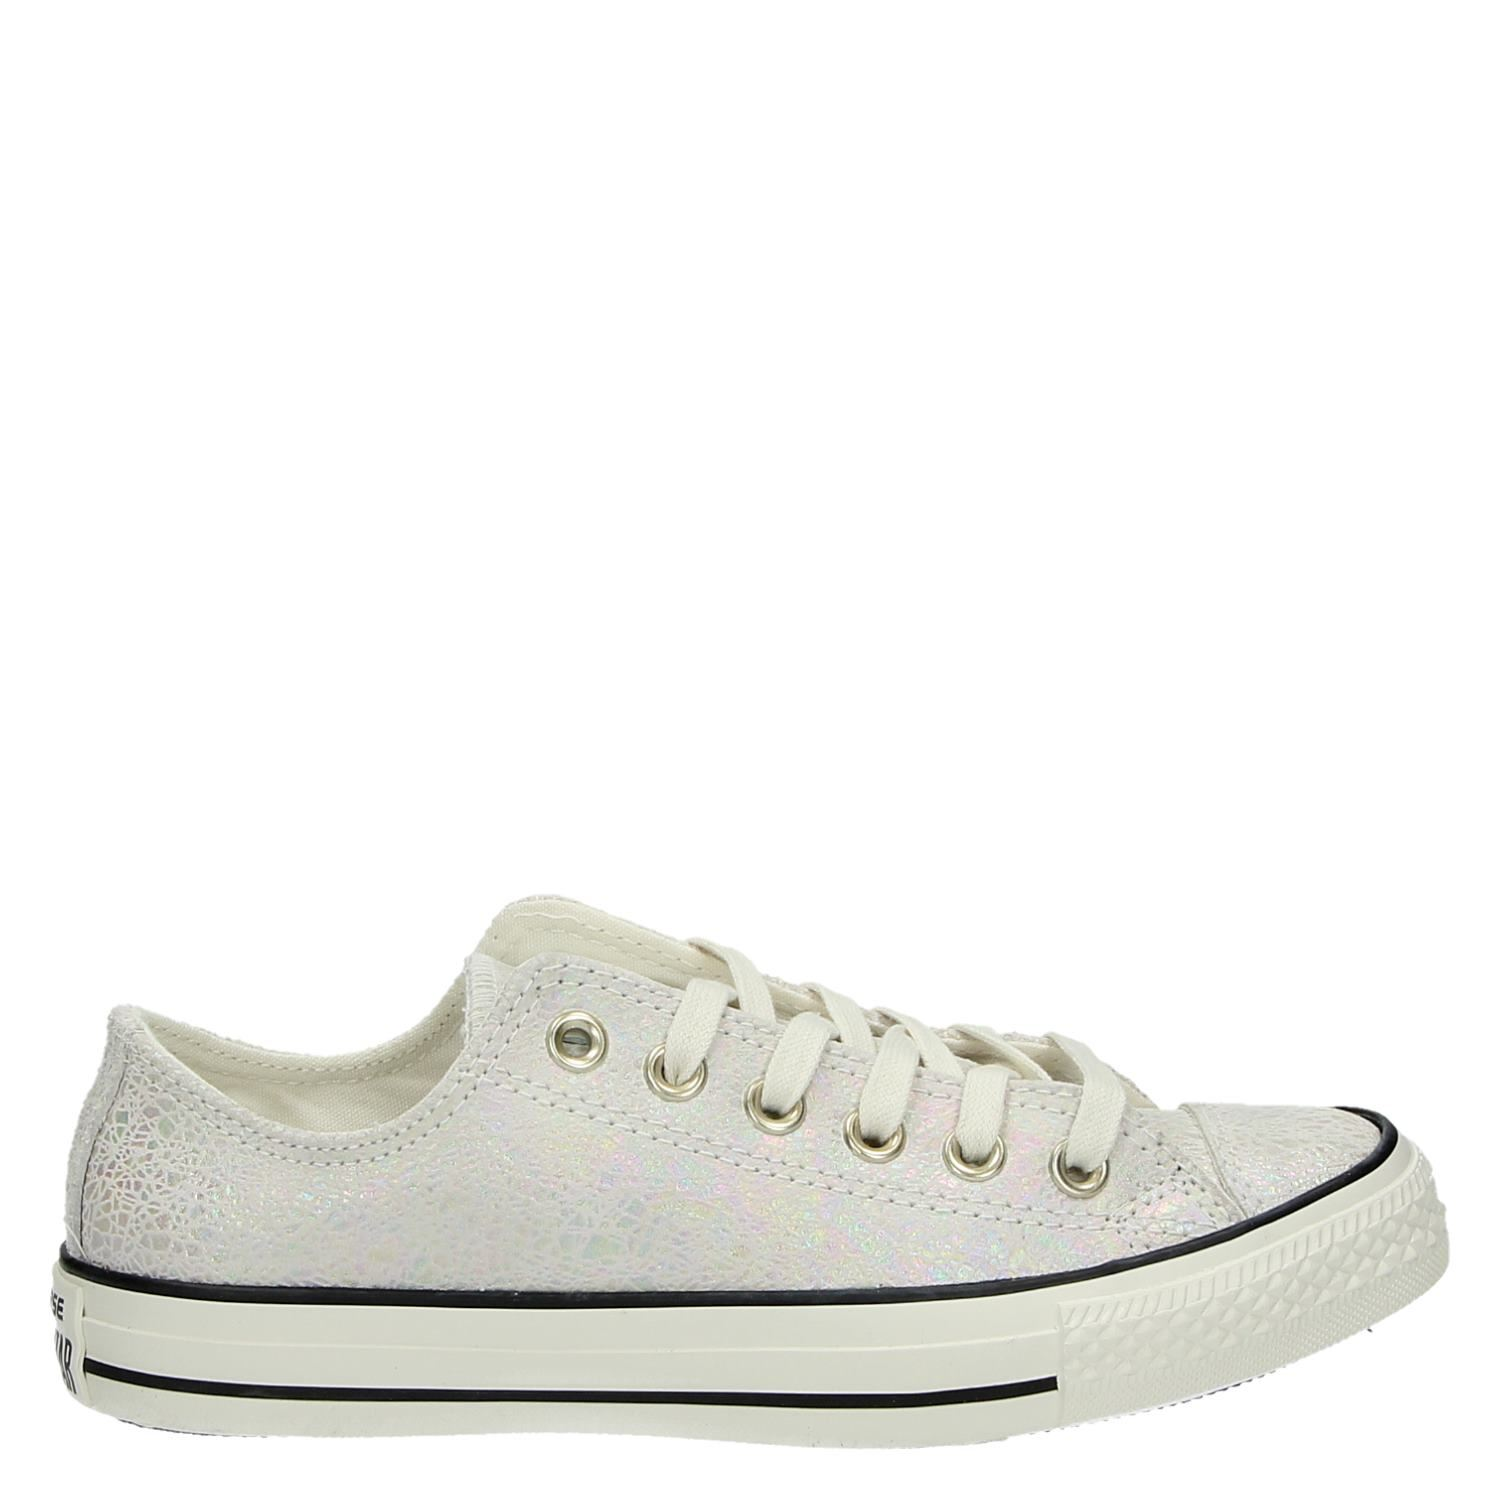 be41f634ab1 Converse All Star dames lage sneakers wit